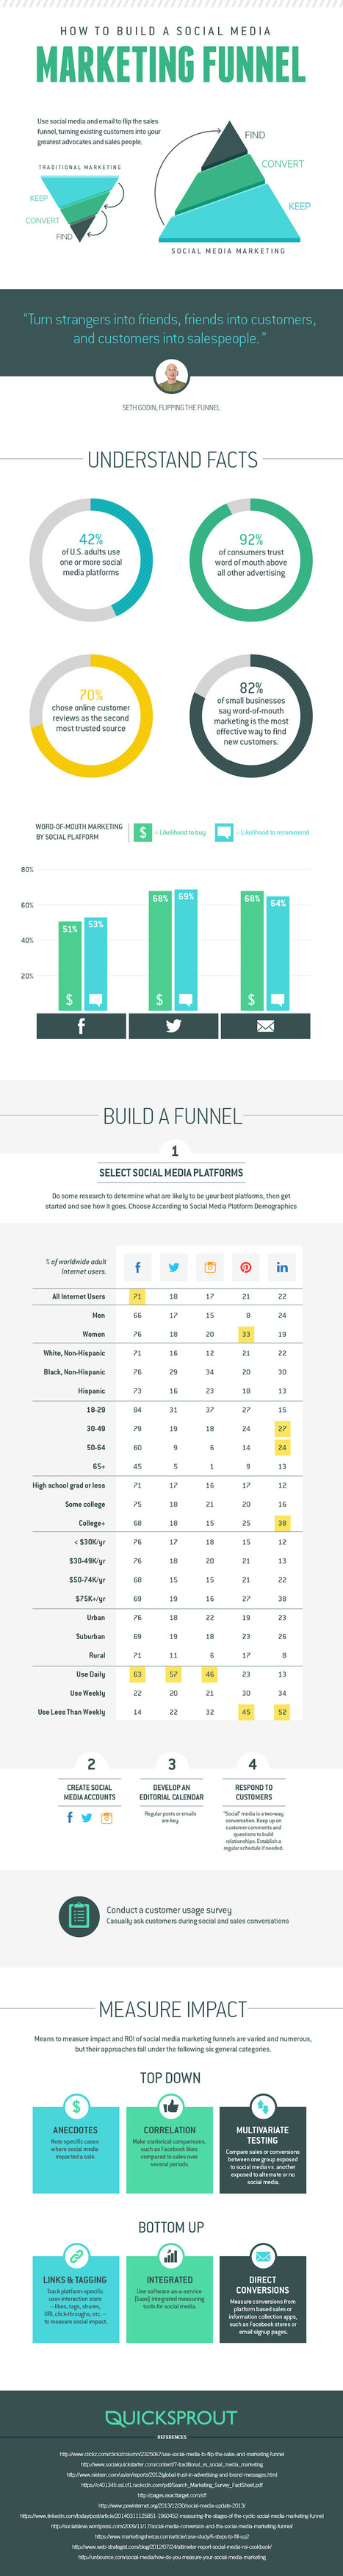 How To Build A Social Media Marketing Funnel [INFOGRAPHIC] | Building the Digital Business | Scoop.it